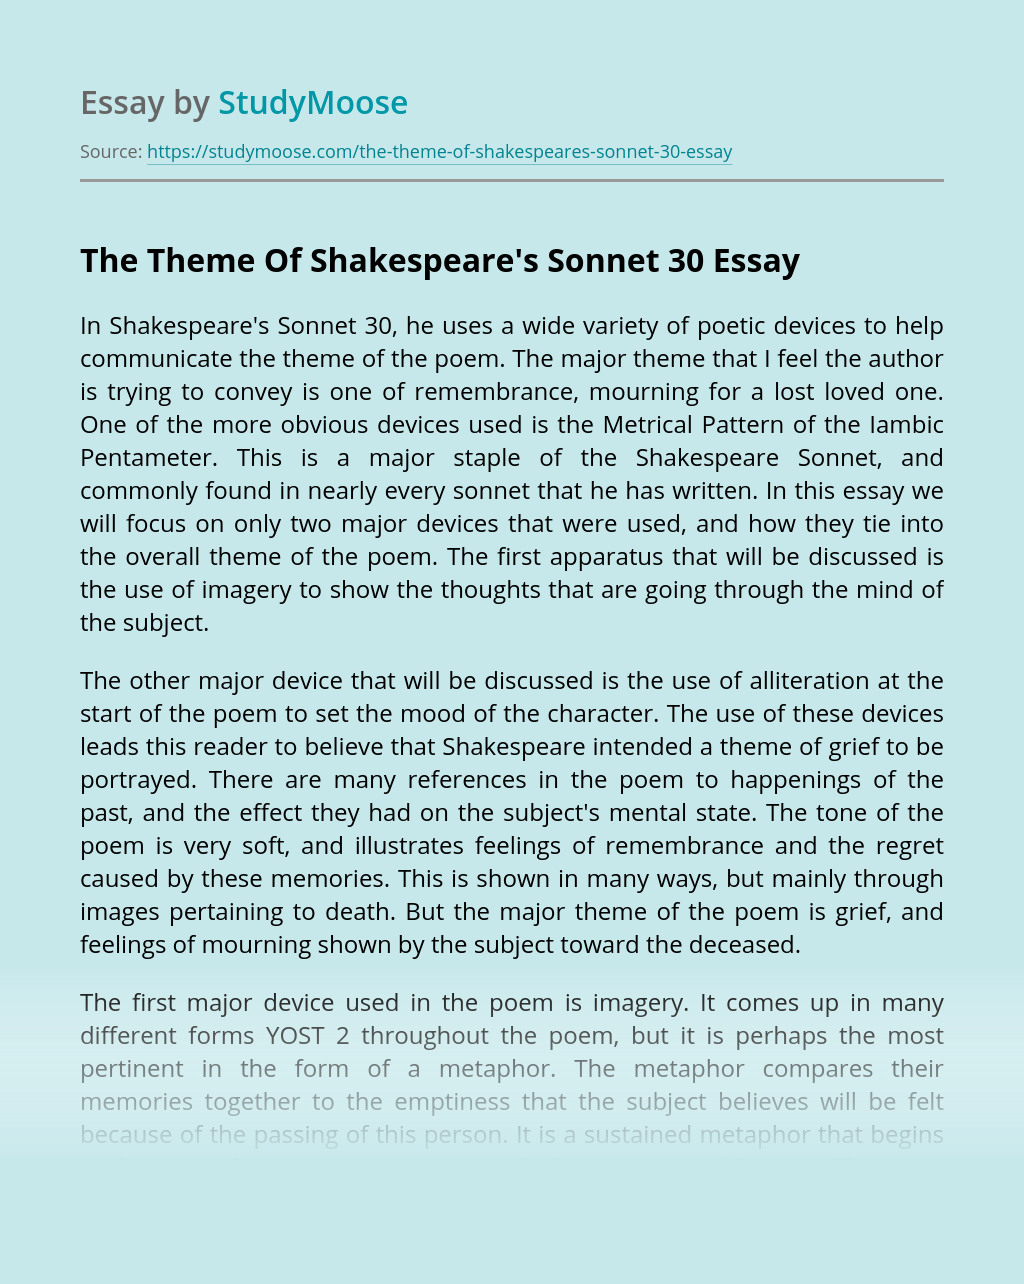 The Theme Of Shakespeare's Sonnet 30